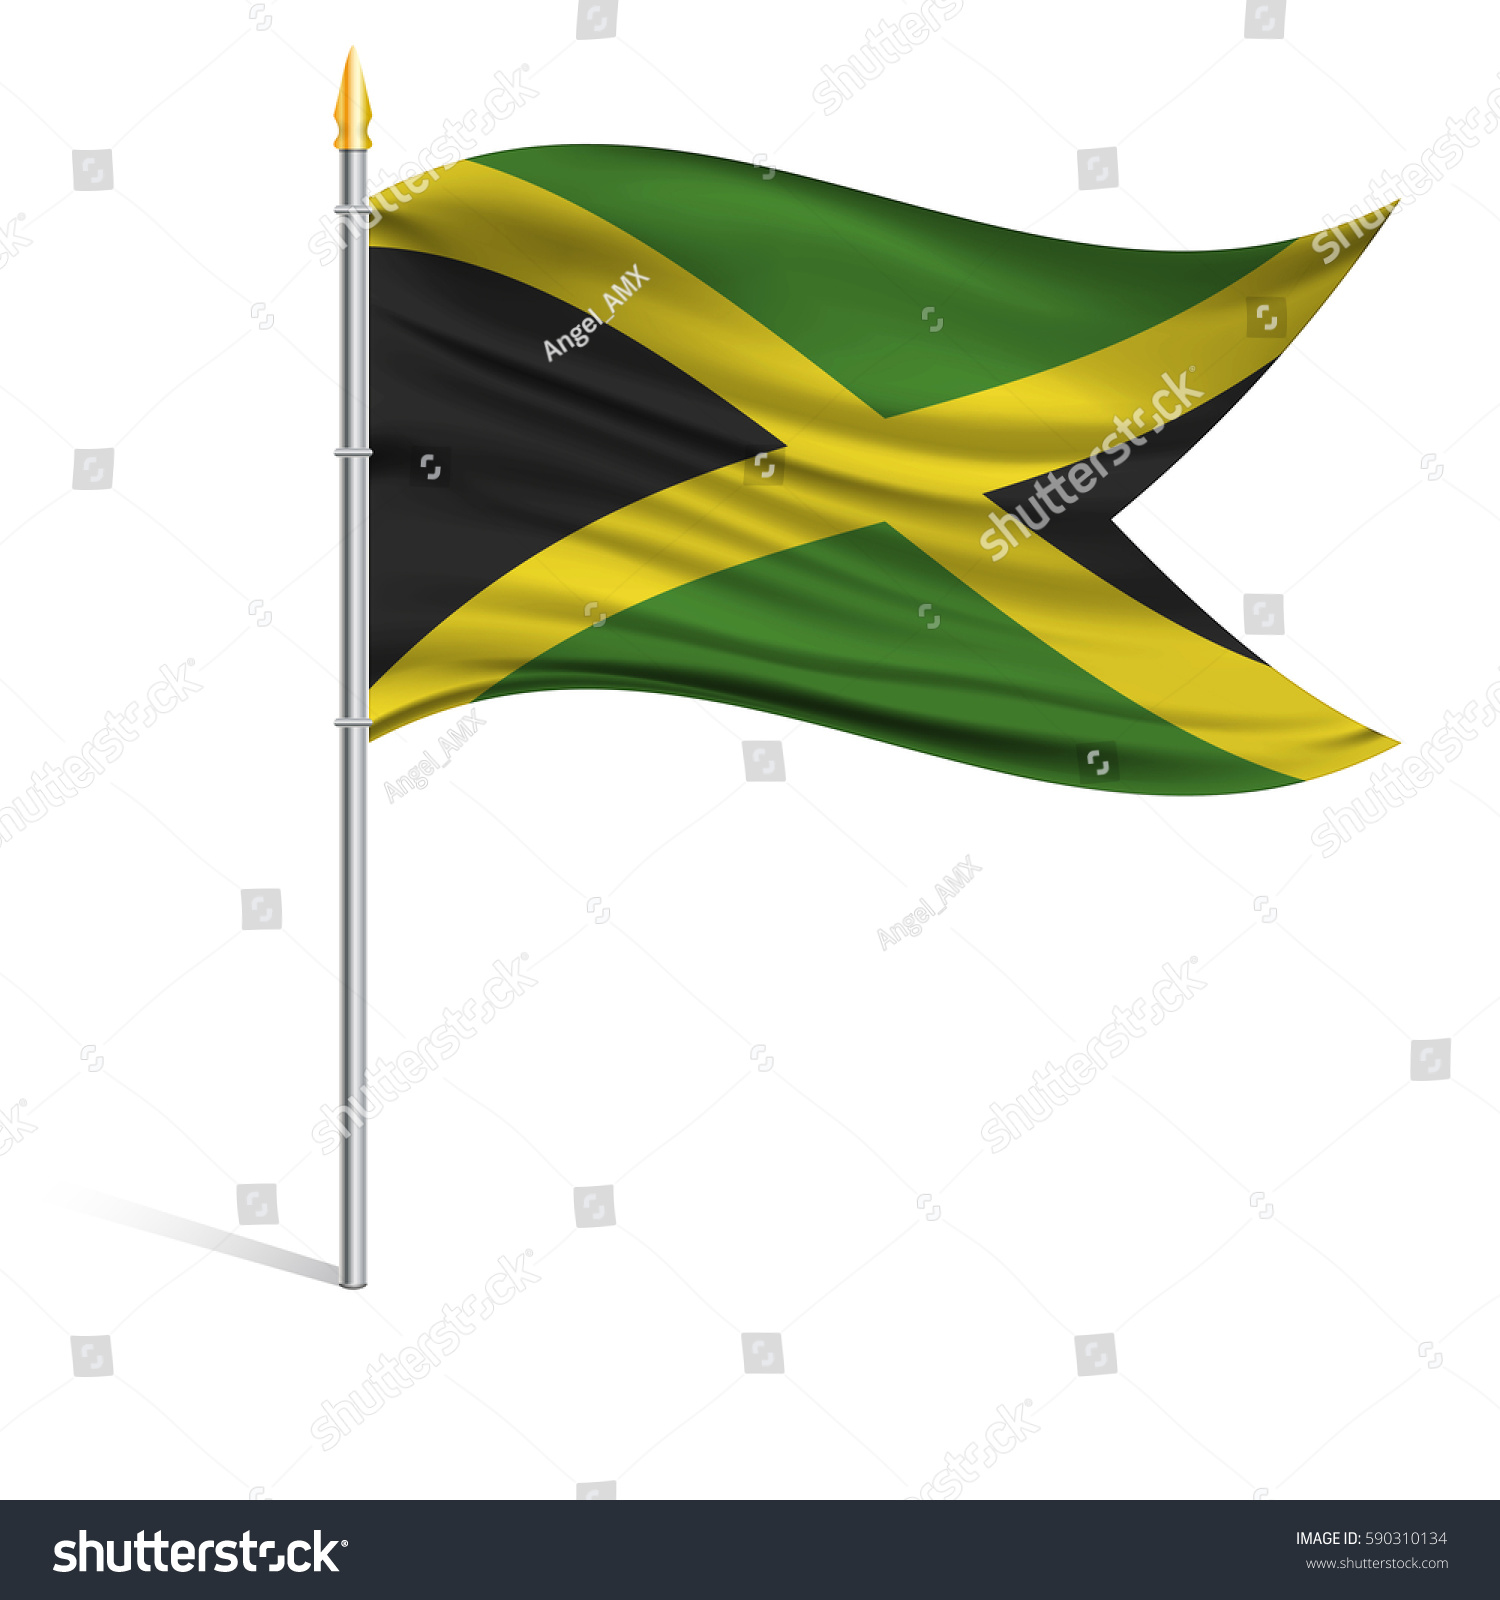 The National Flag Of Jamaica On A Pole The Wavy Fabric The Sign